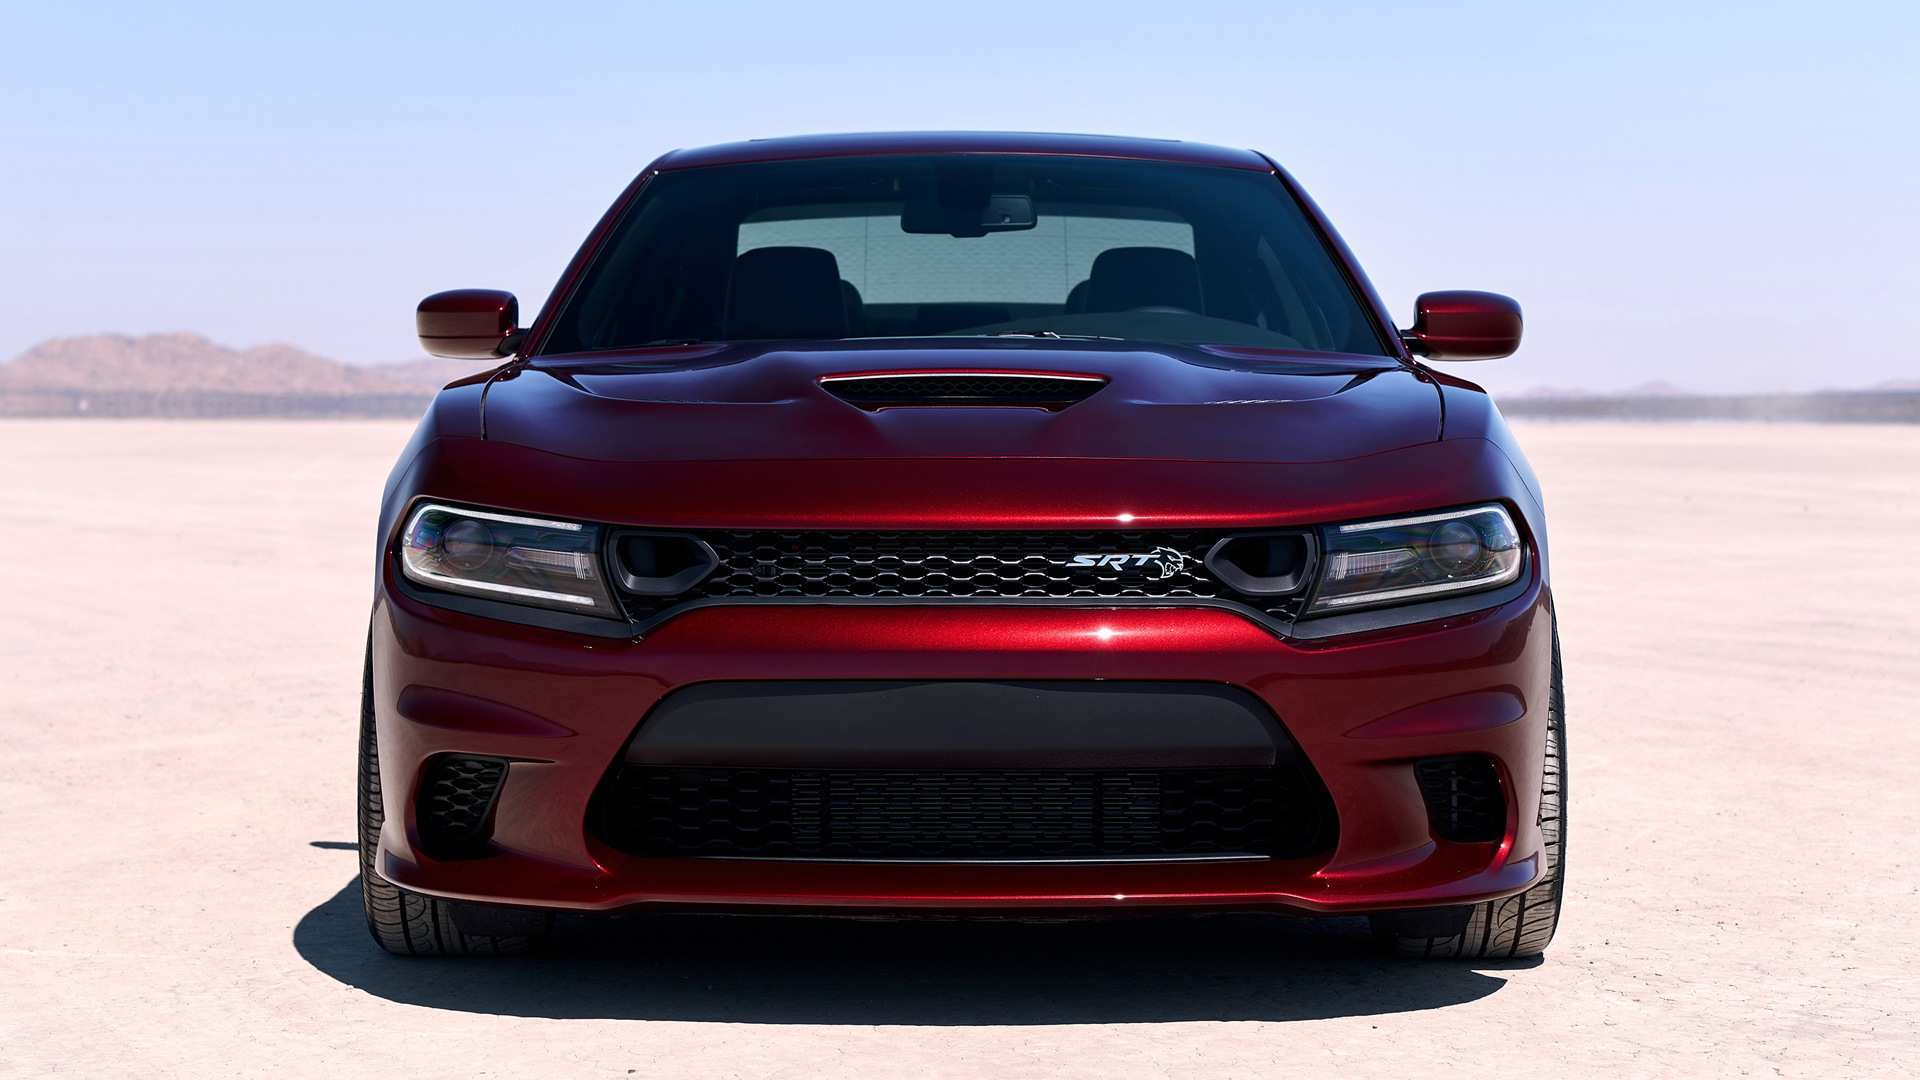 74 Best 2020 Dodge Charger SRT8 Release Date